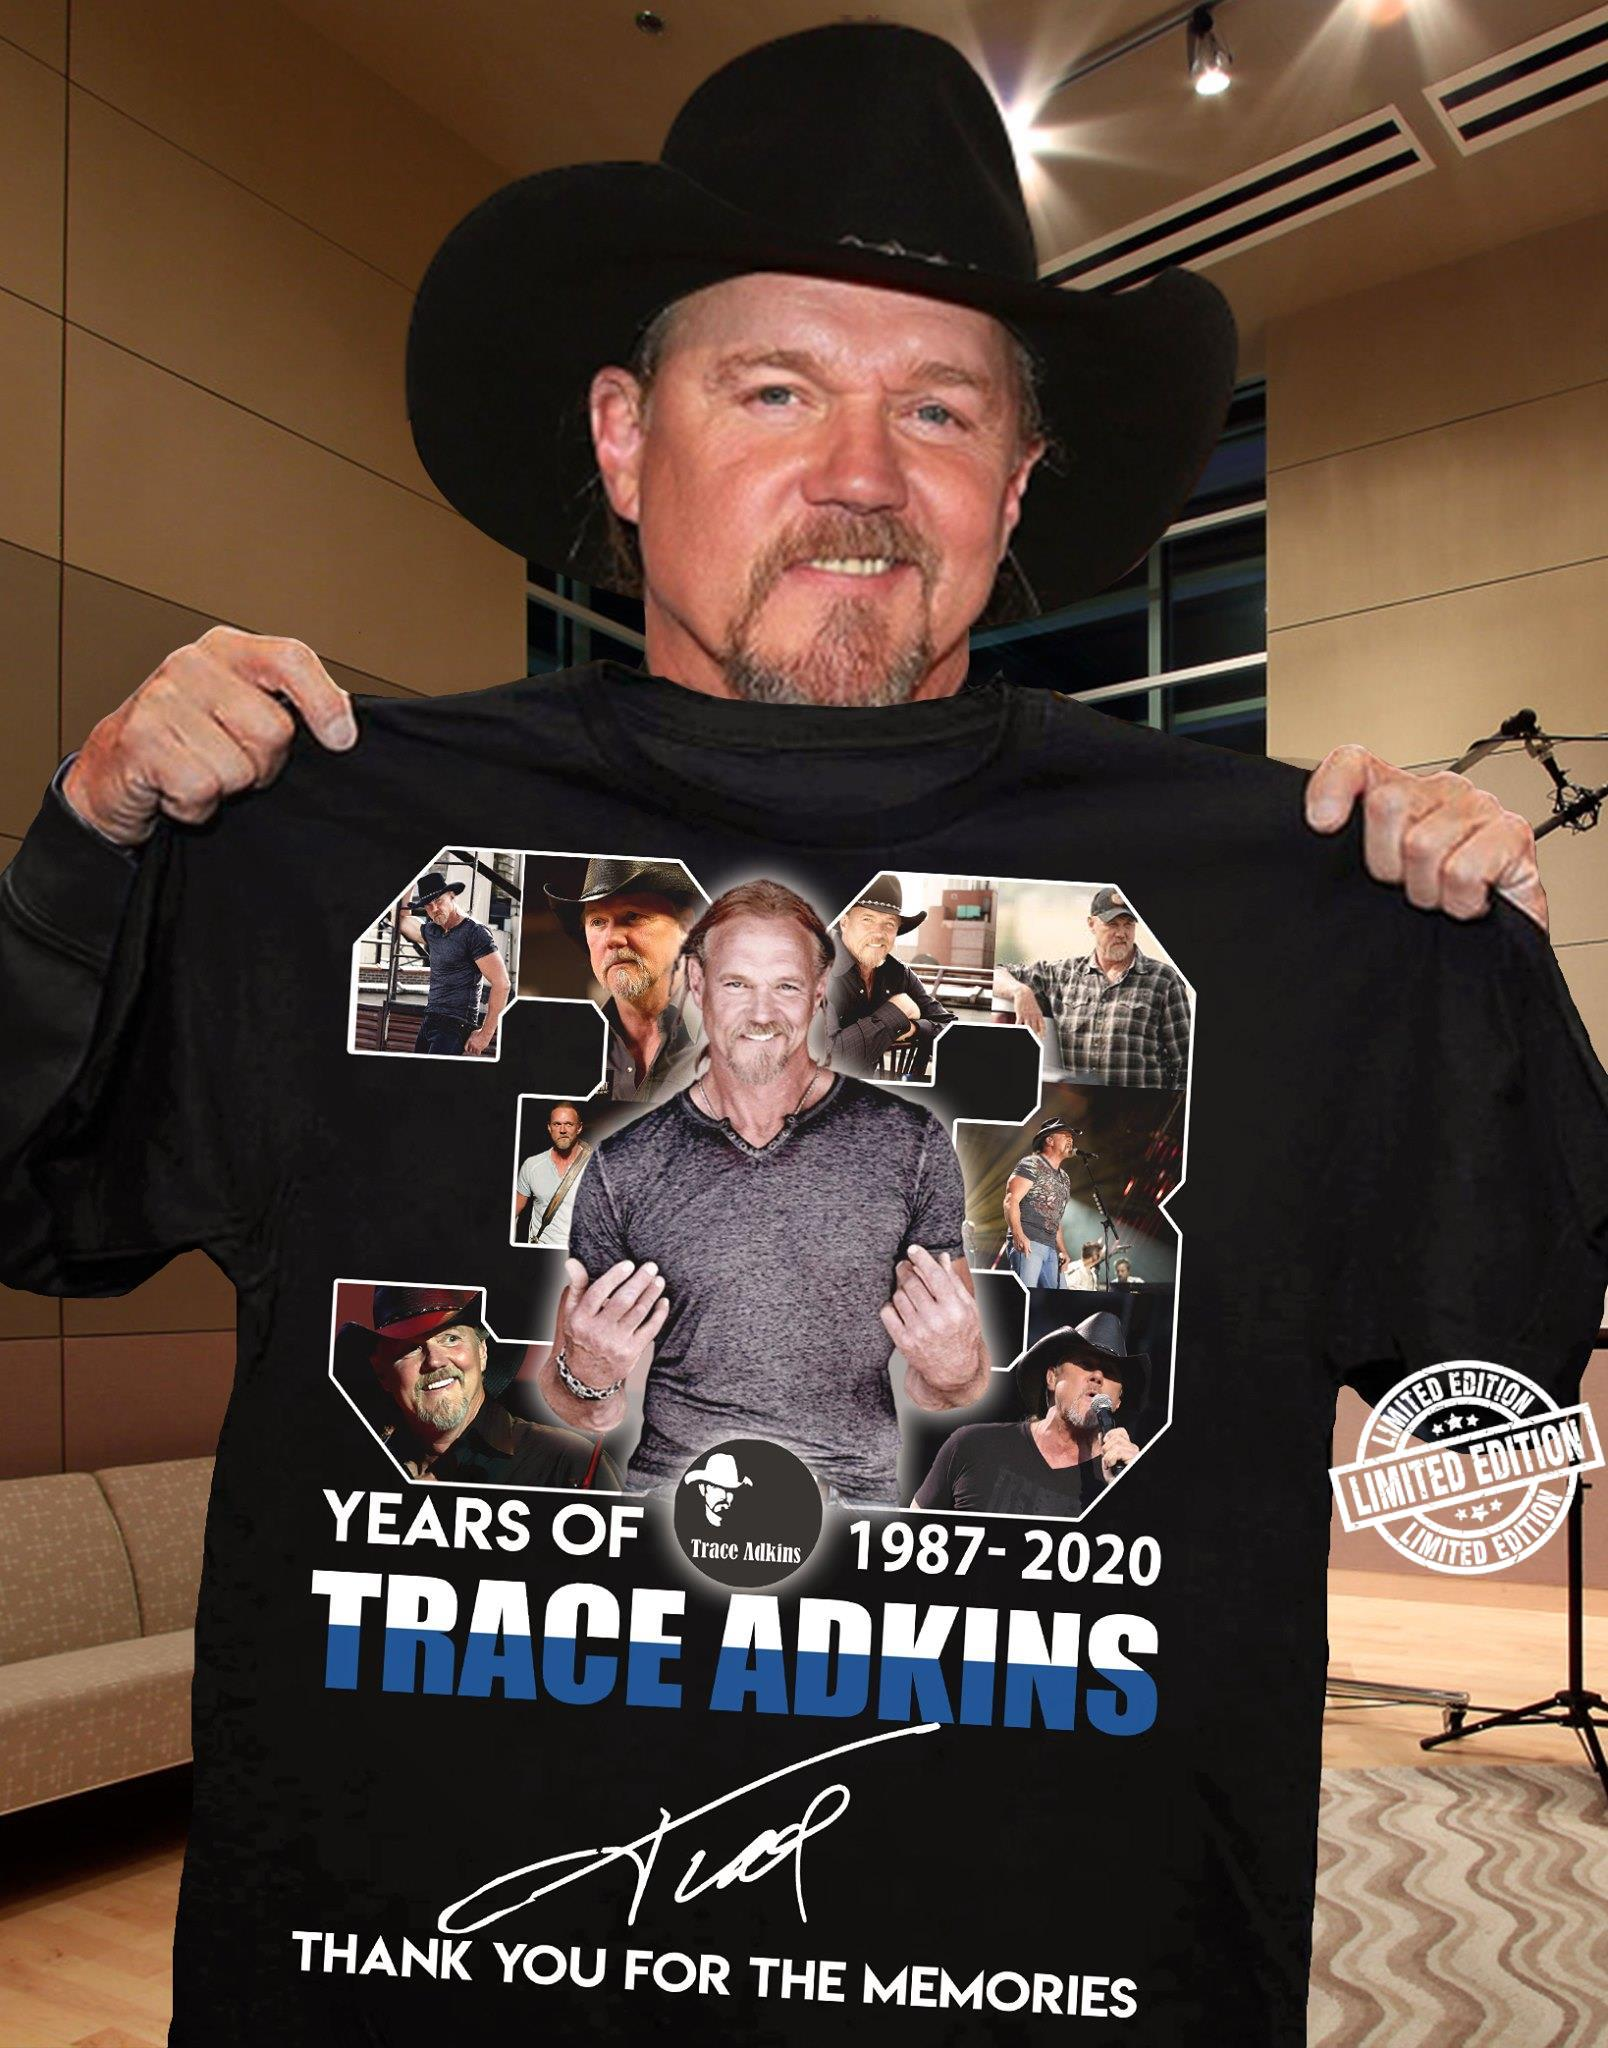 33 Years of 1987-2020 trace adkins thank you for the memories shirt